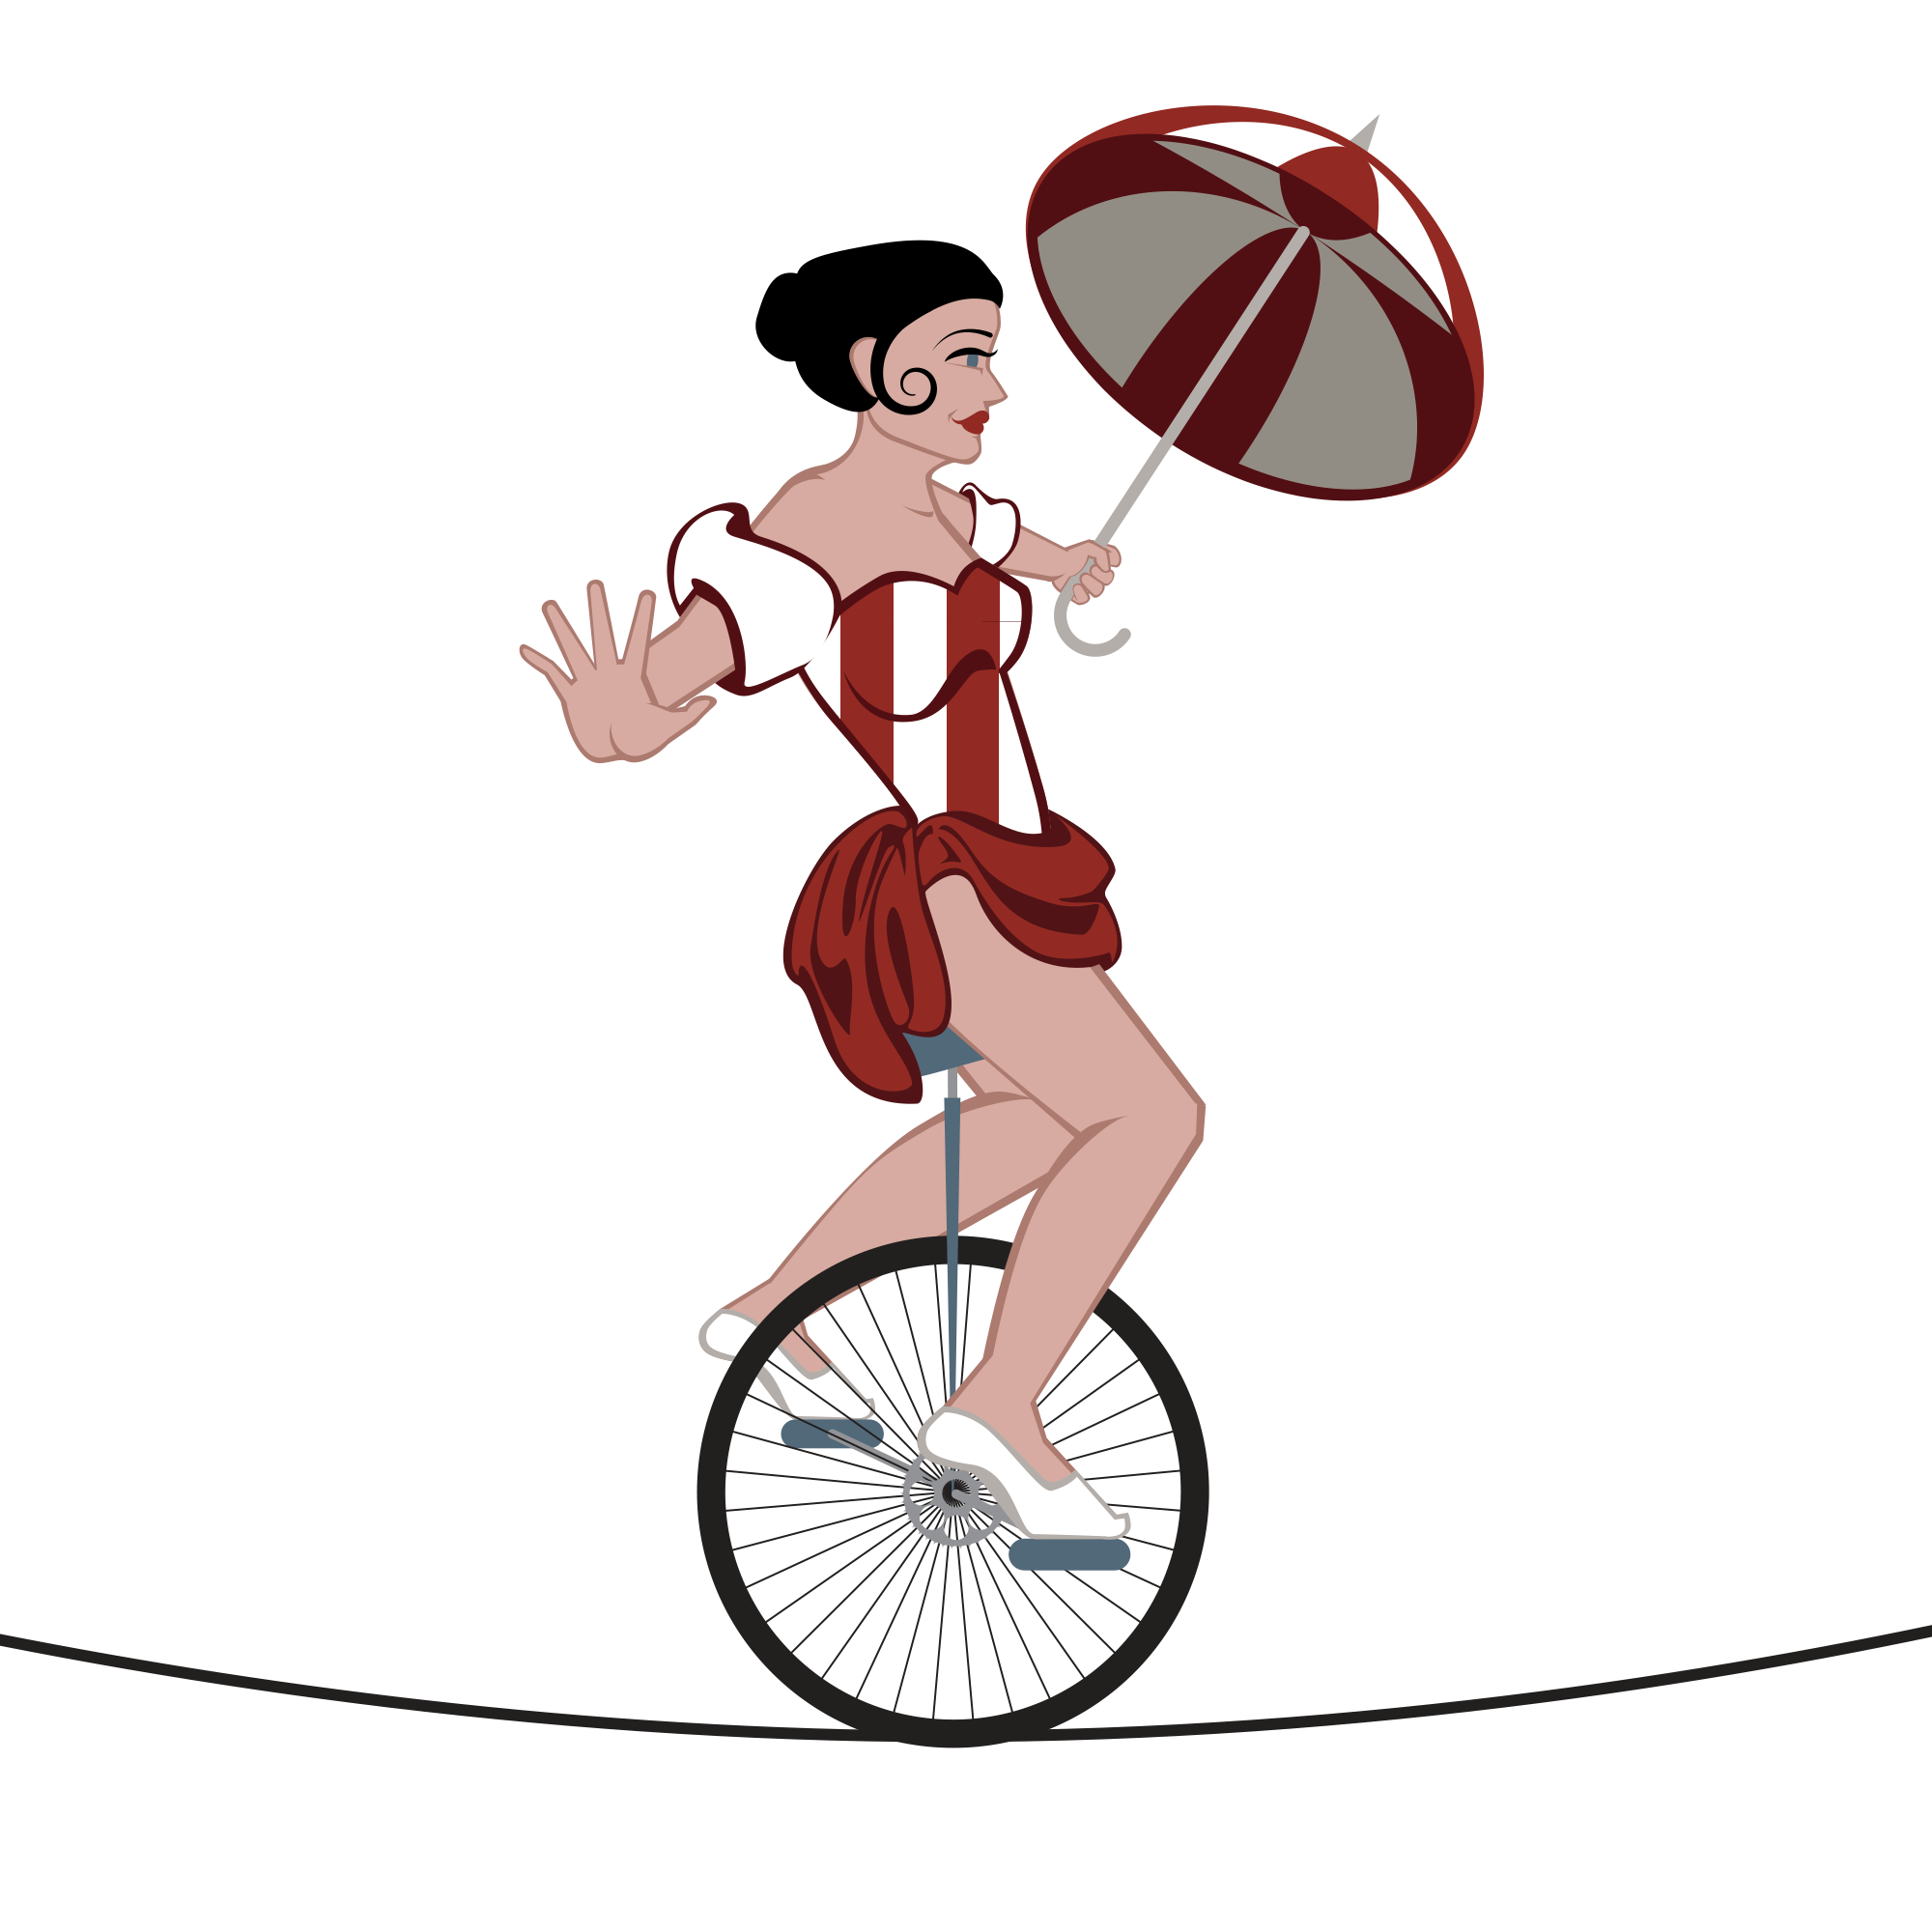 clipart Clipart pencil and in. Unicycle drawing circus